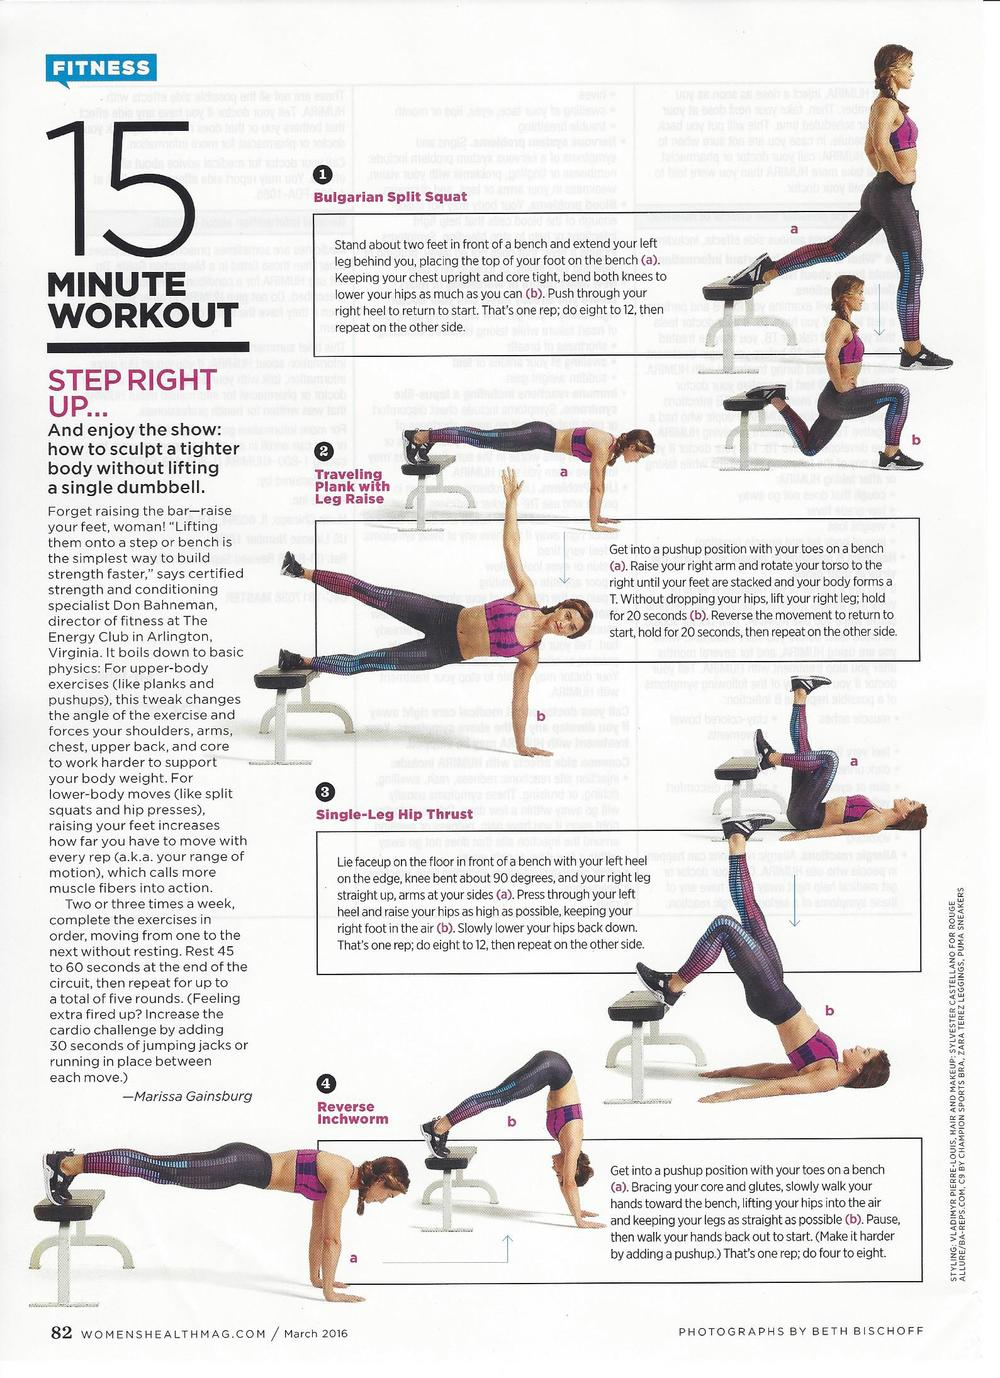 Special thanks and gratitude to the team at Women's Health for letting me devise the 15 minute workout for March's issue! - DB